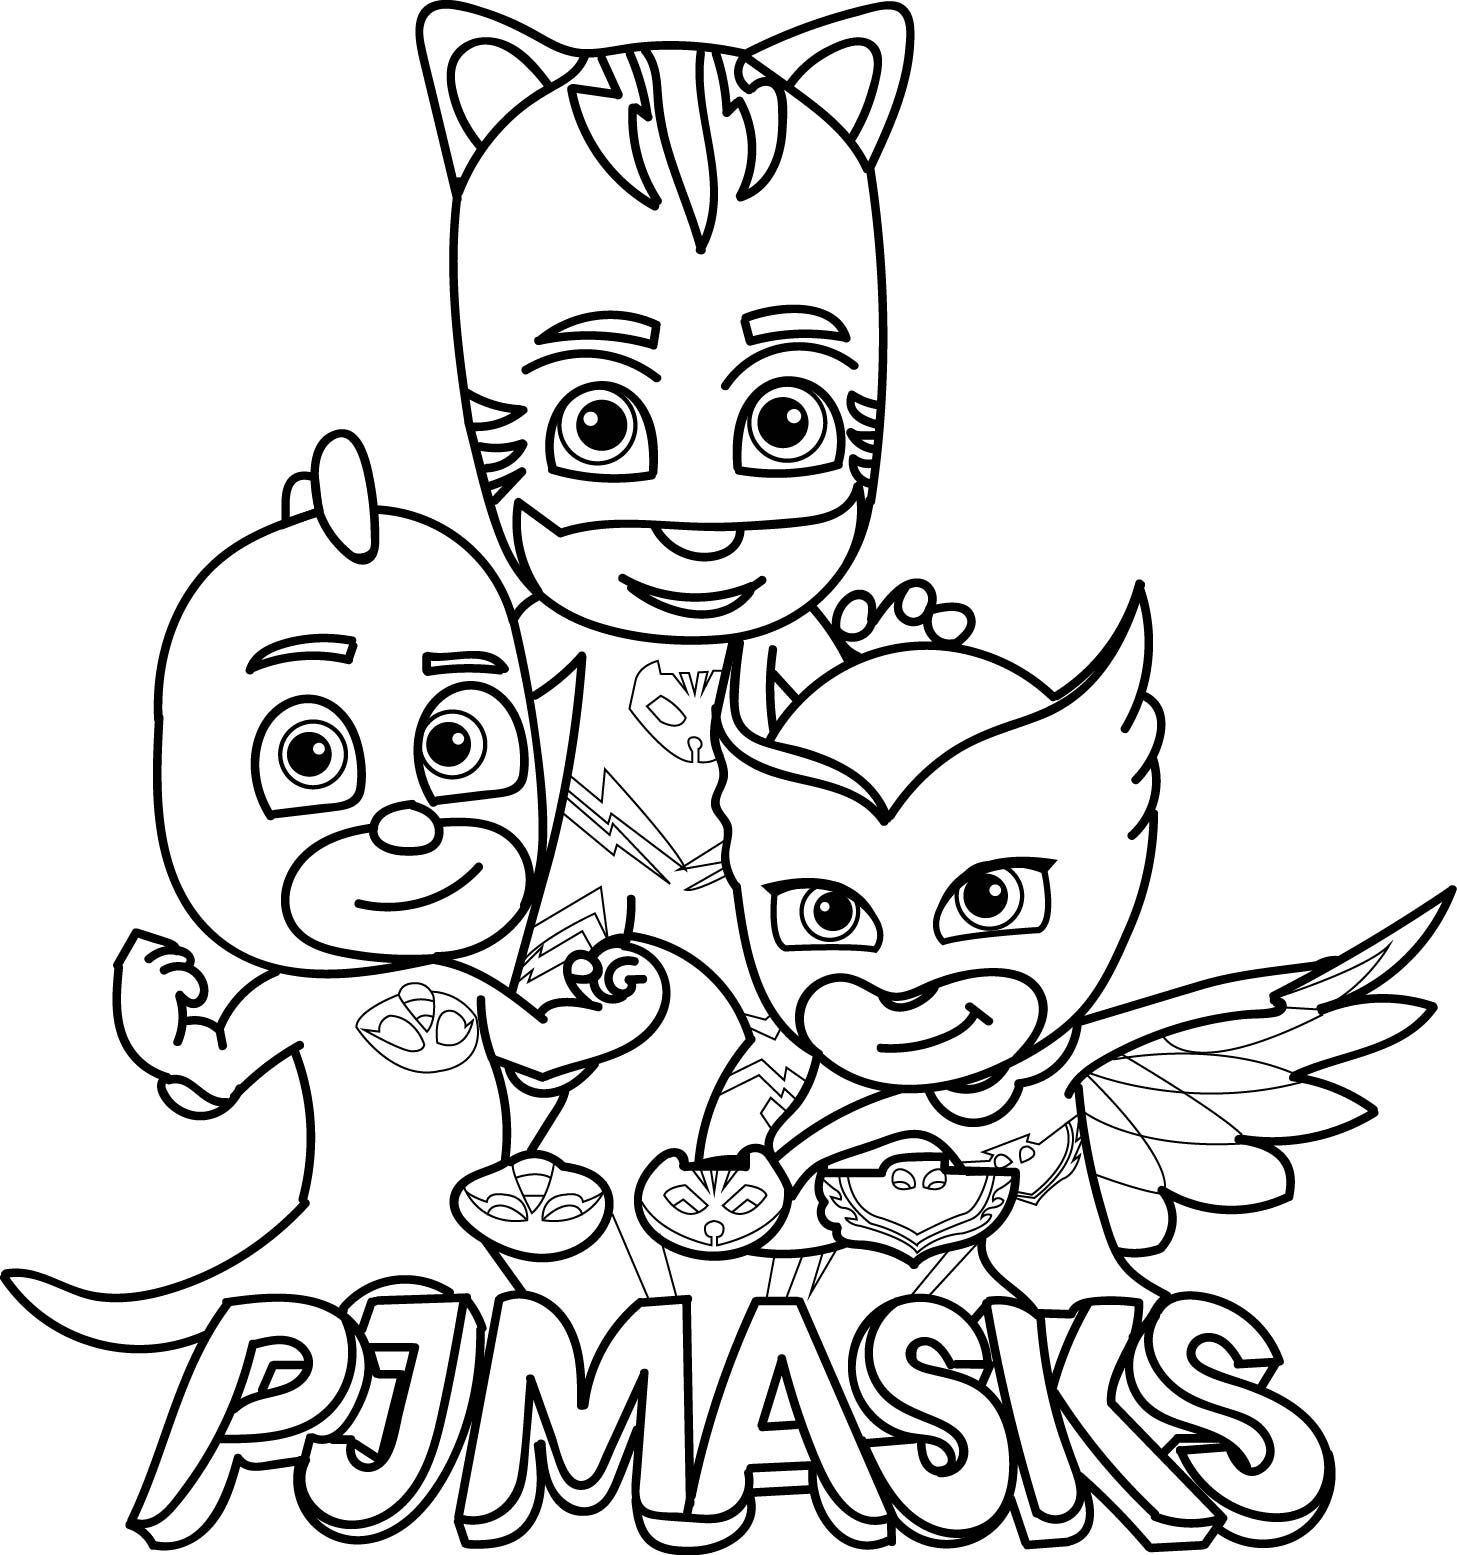 photo about Printable Pj Masks Coloring Pages called PJ Masks Coloring Webpages PJ Masks Pj masks coloring web pages